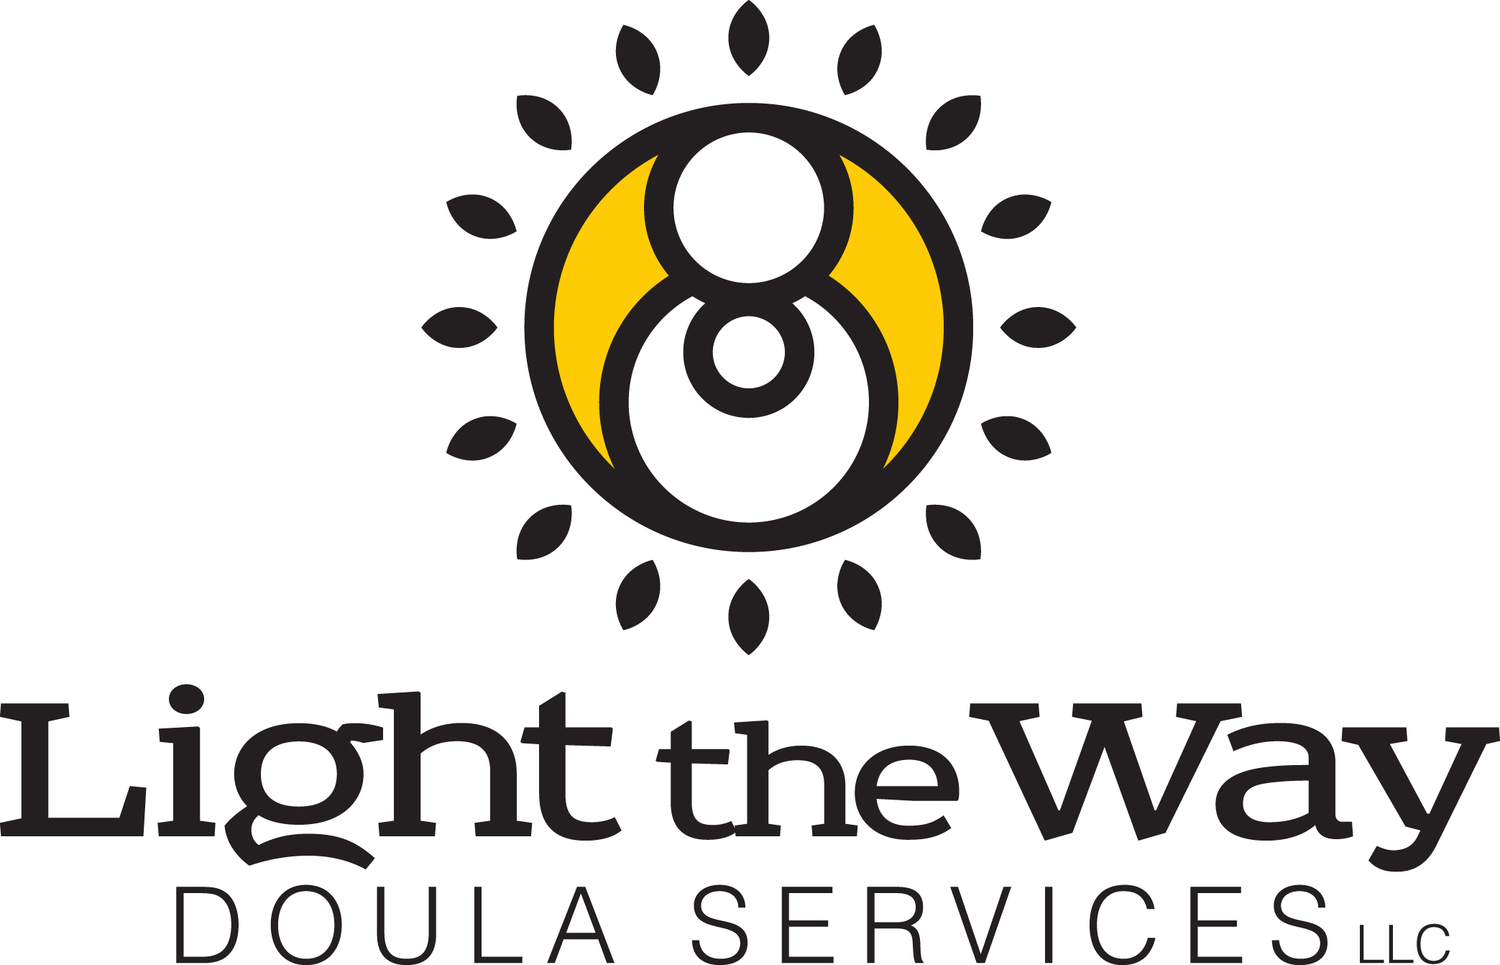 Light the Way Doula Services